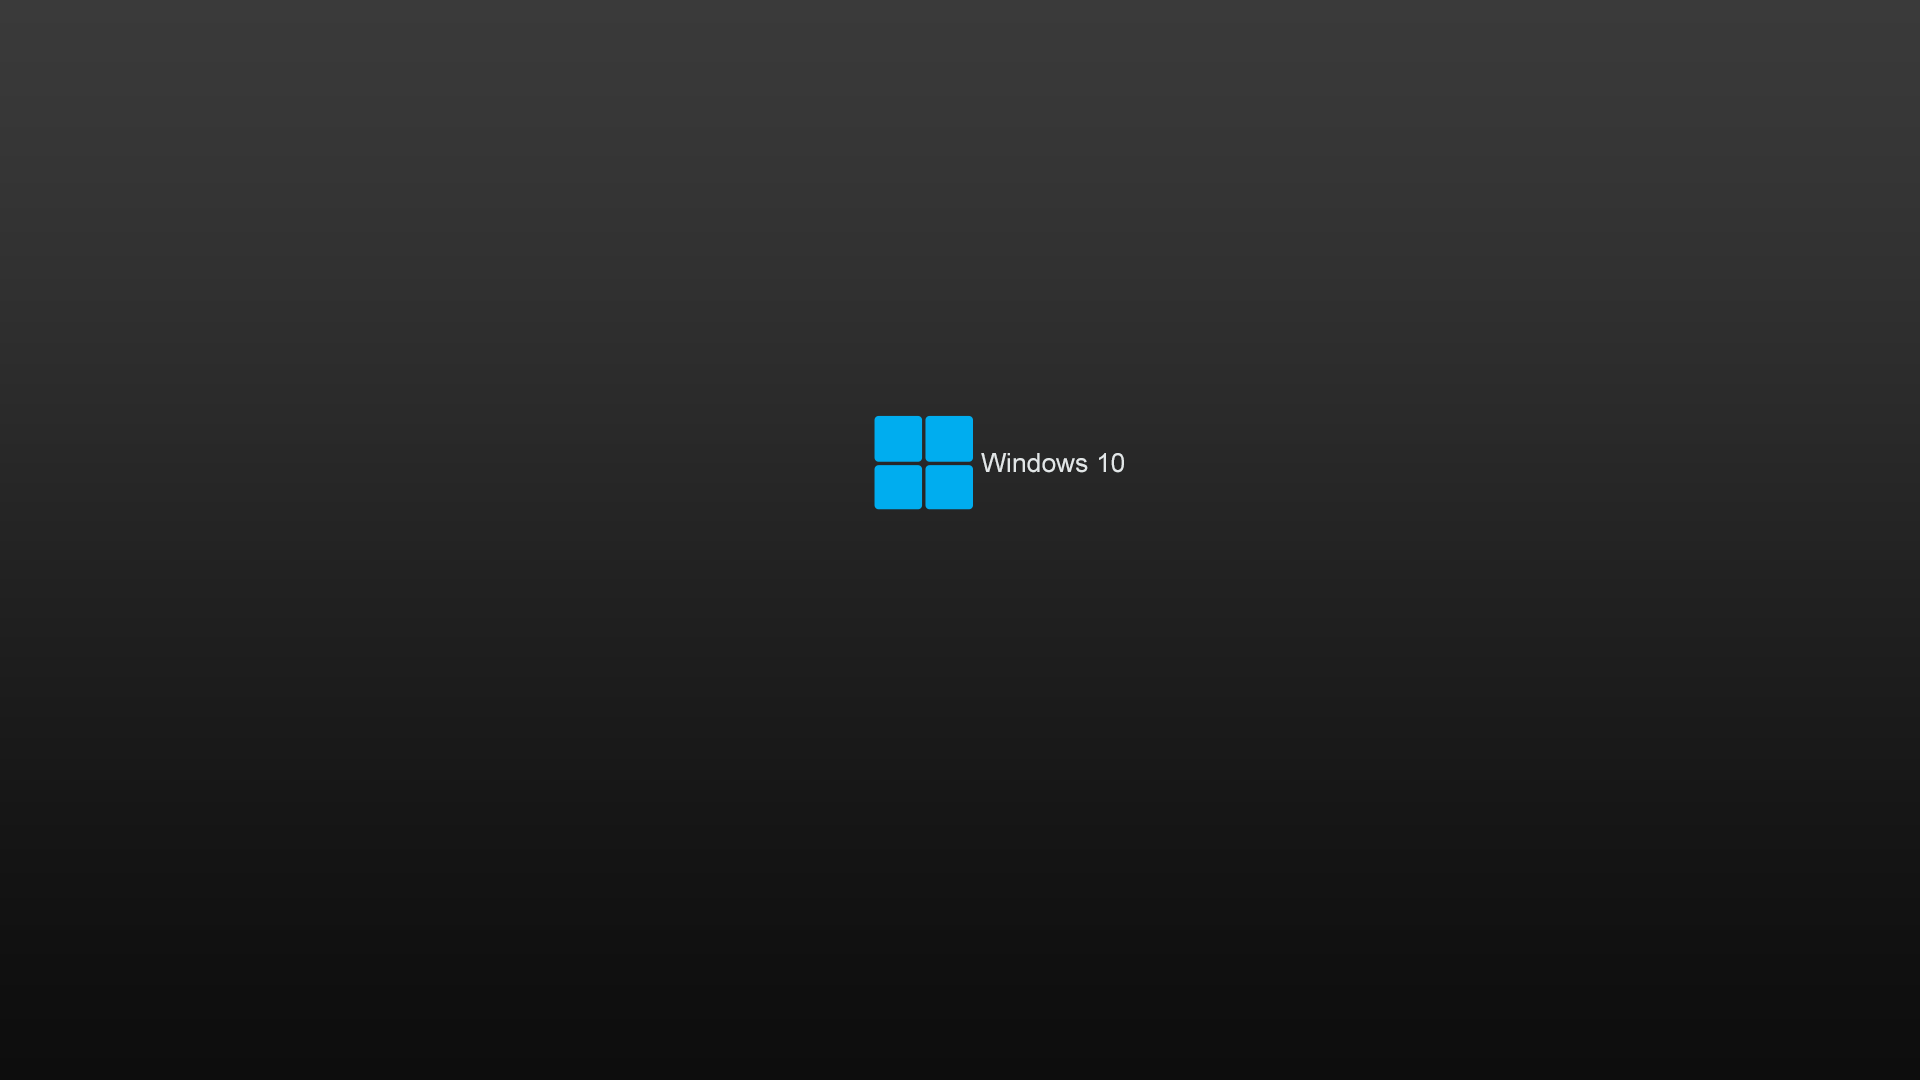 Windows 10 Original Wallpaper: Windows 10 Wallpapers, Pictures, Images